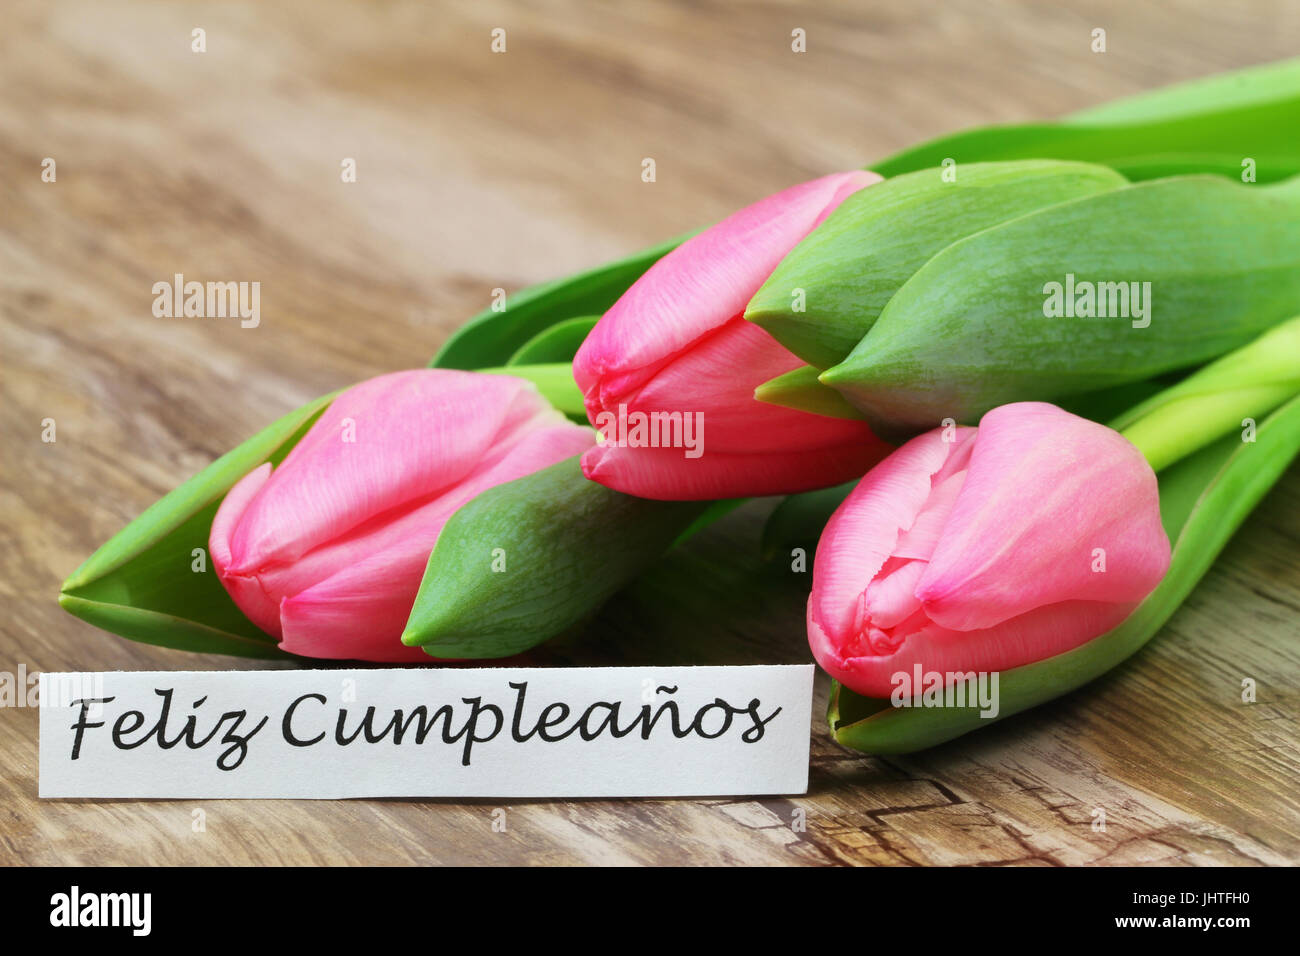 Feliz Cumpleanos Happy Birthday In Spanish Card With Pink Tulips On Wooden Surface